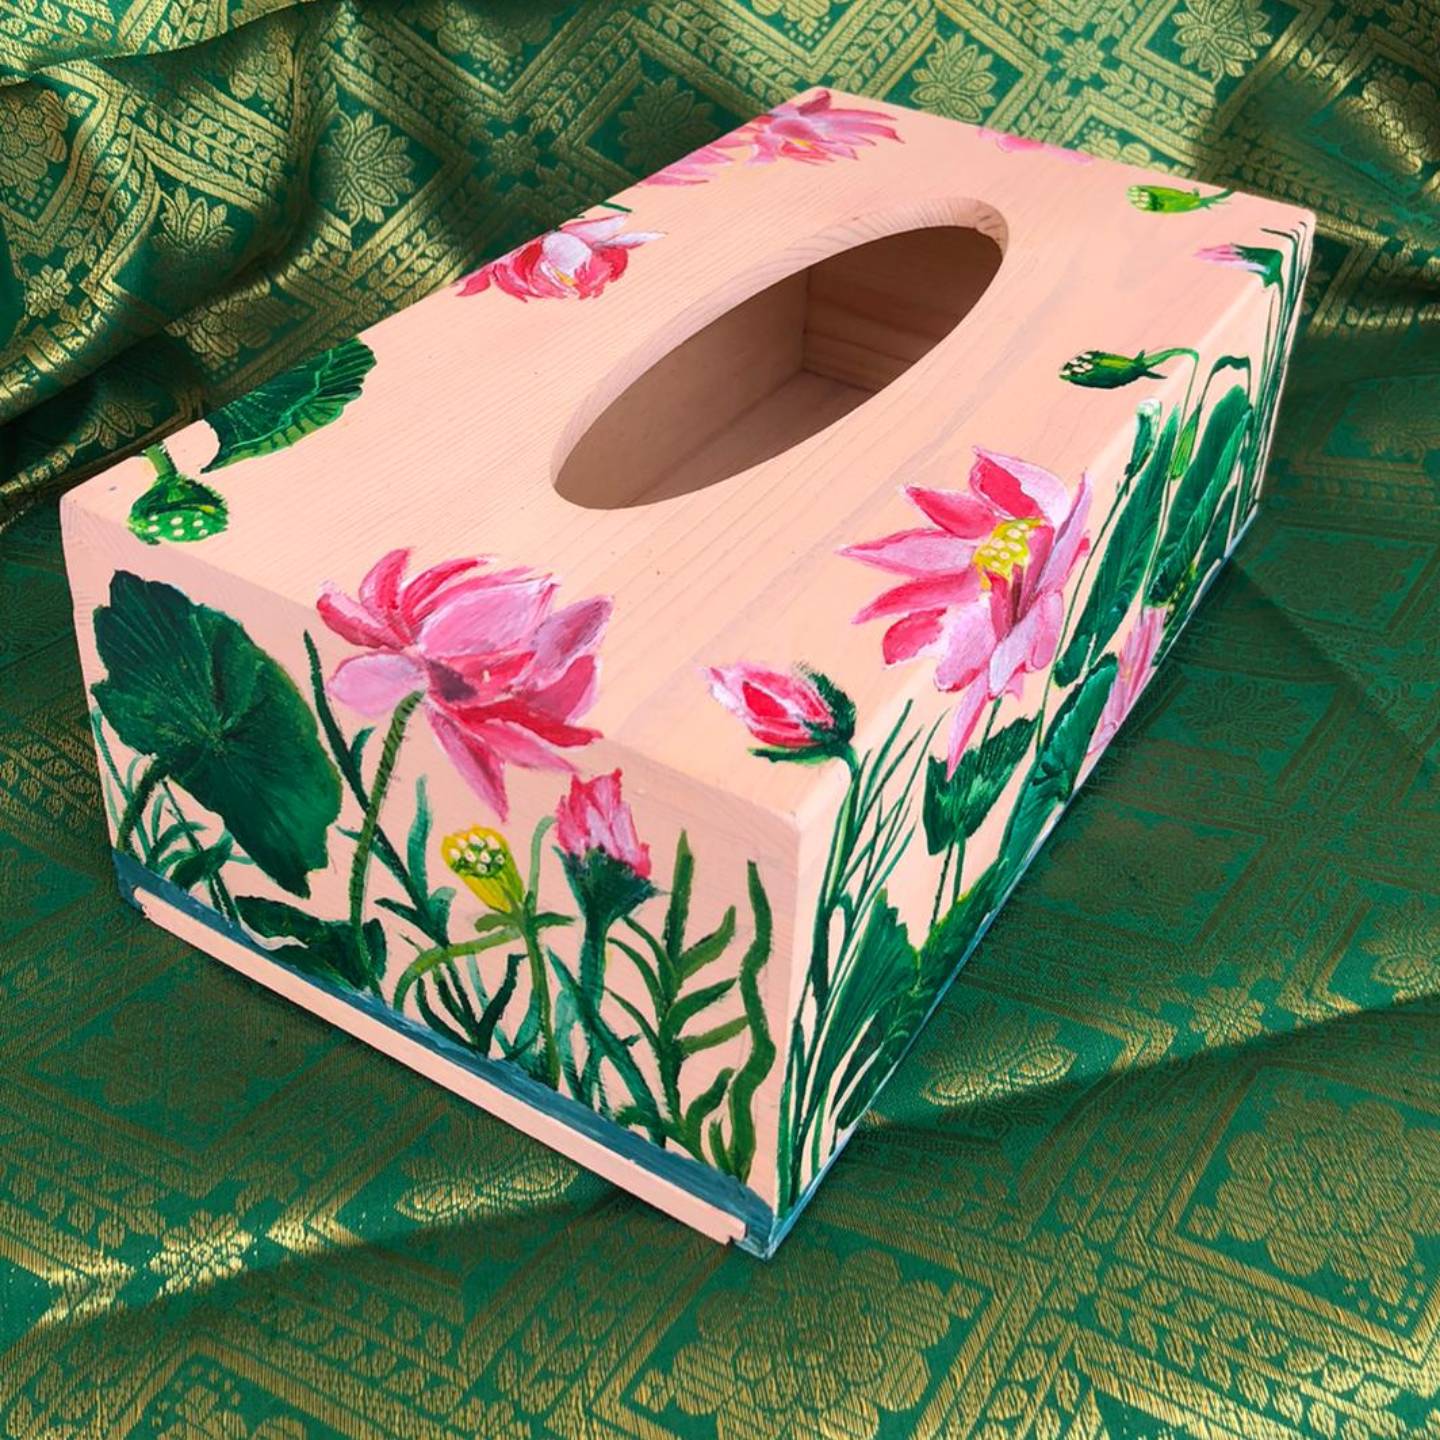 Light Pink Tissue Box with Lotus flowers